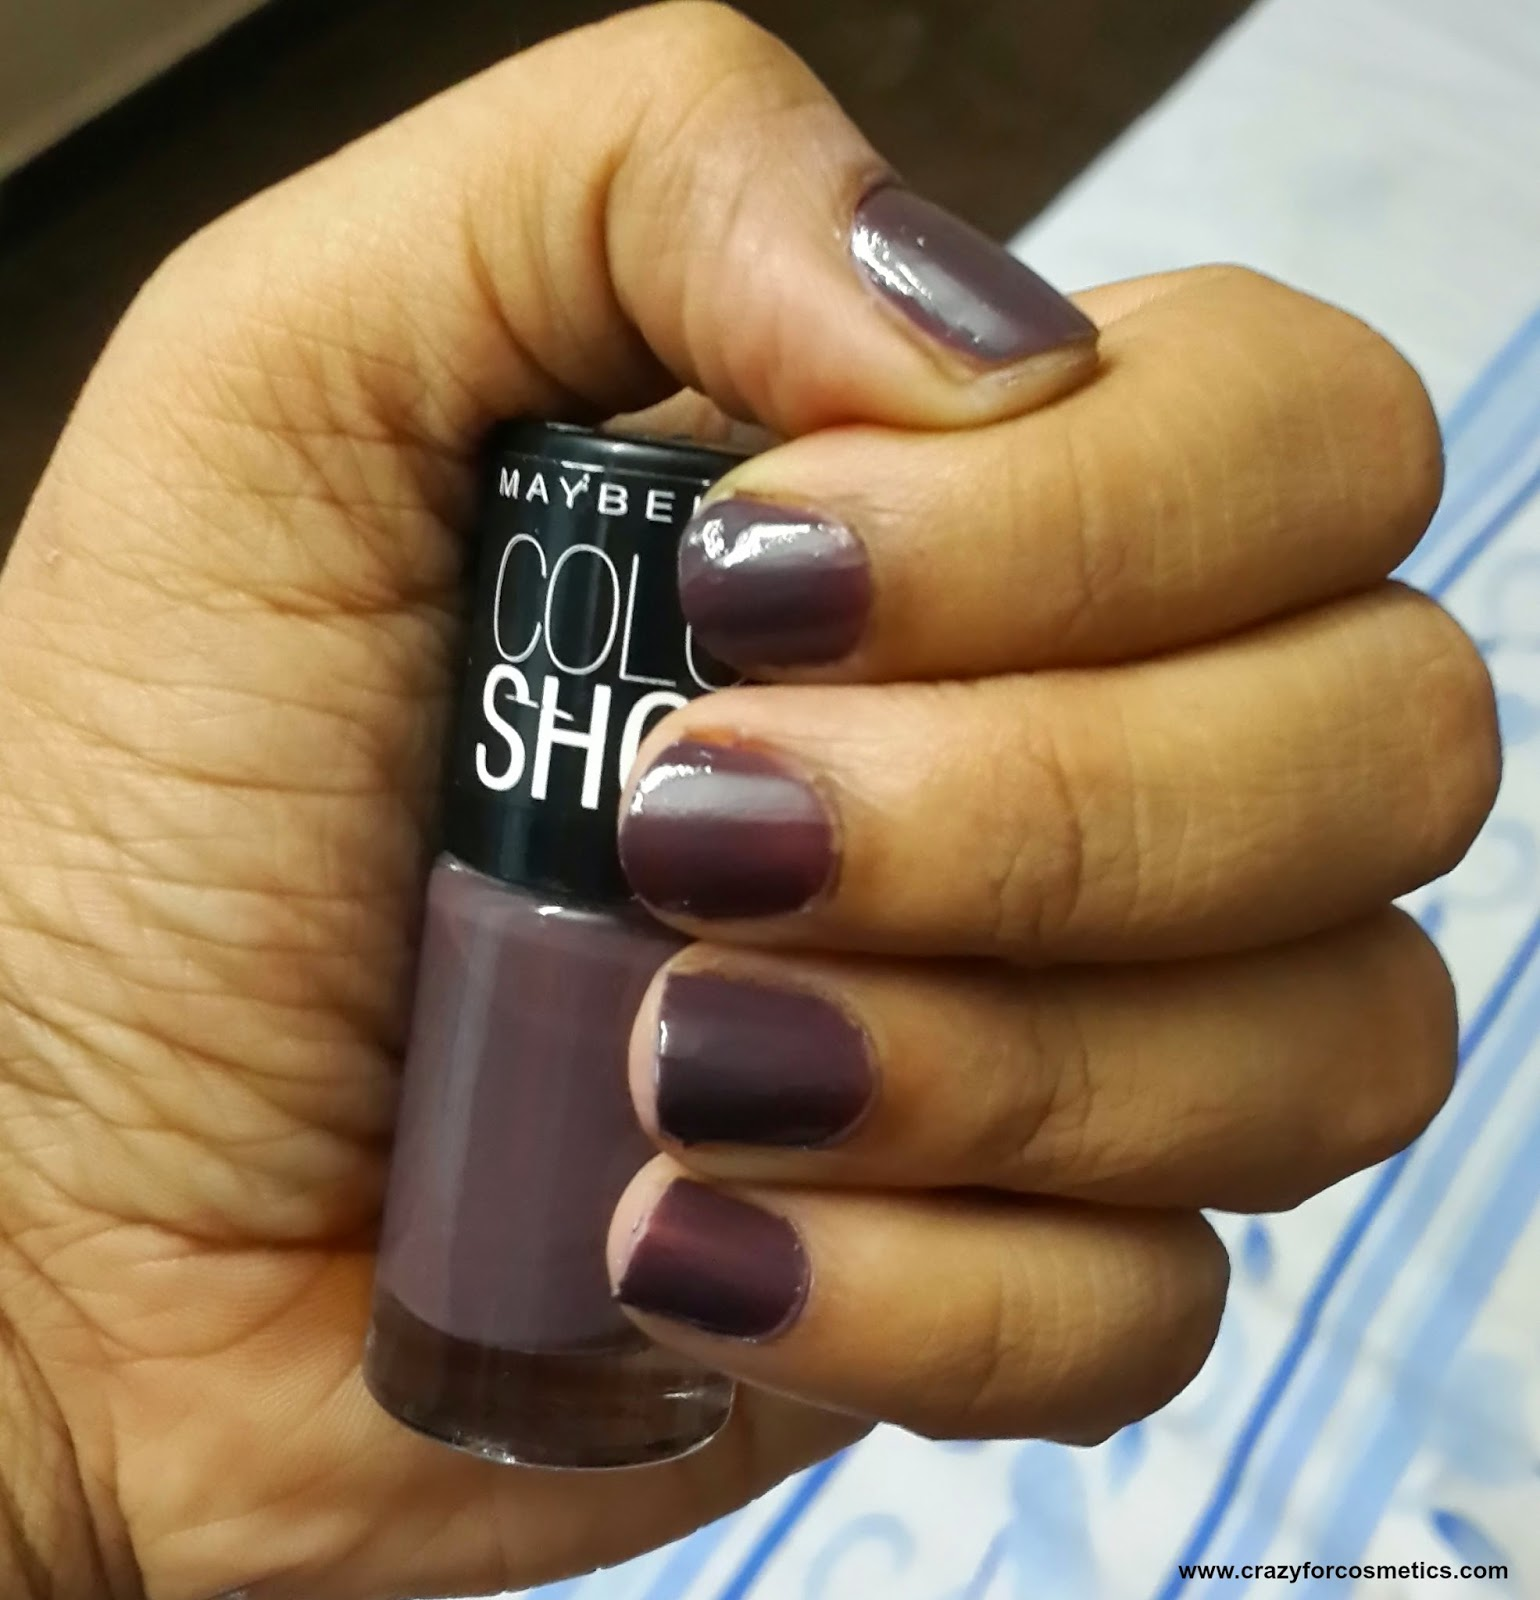 maybelline color show nail polish review-maybelline color show nail polish midnight taupe- maybelline color show midnight tAUPE-maybelline color show nail polish review india- maybelline color show nail polish India